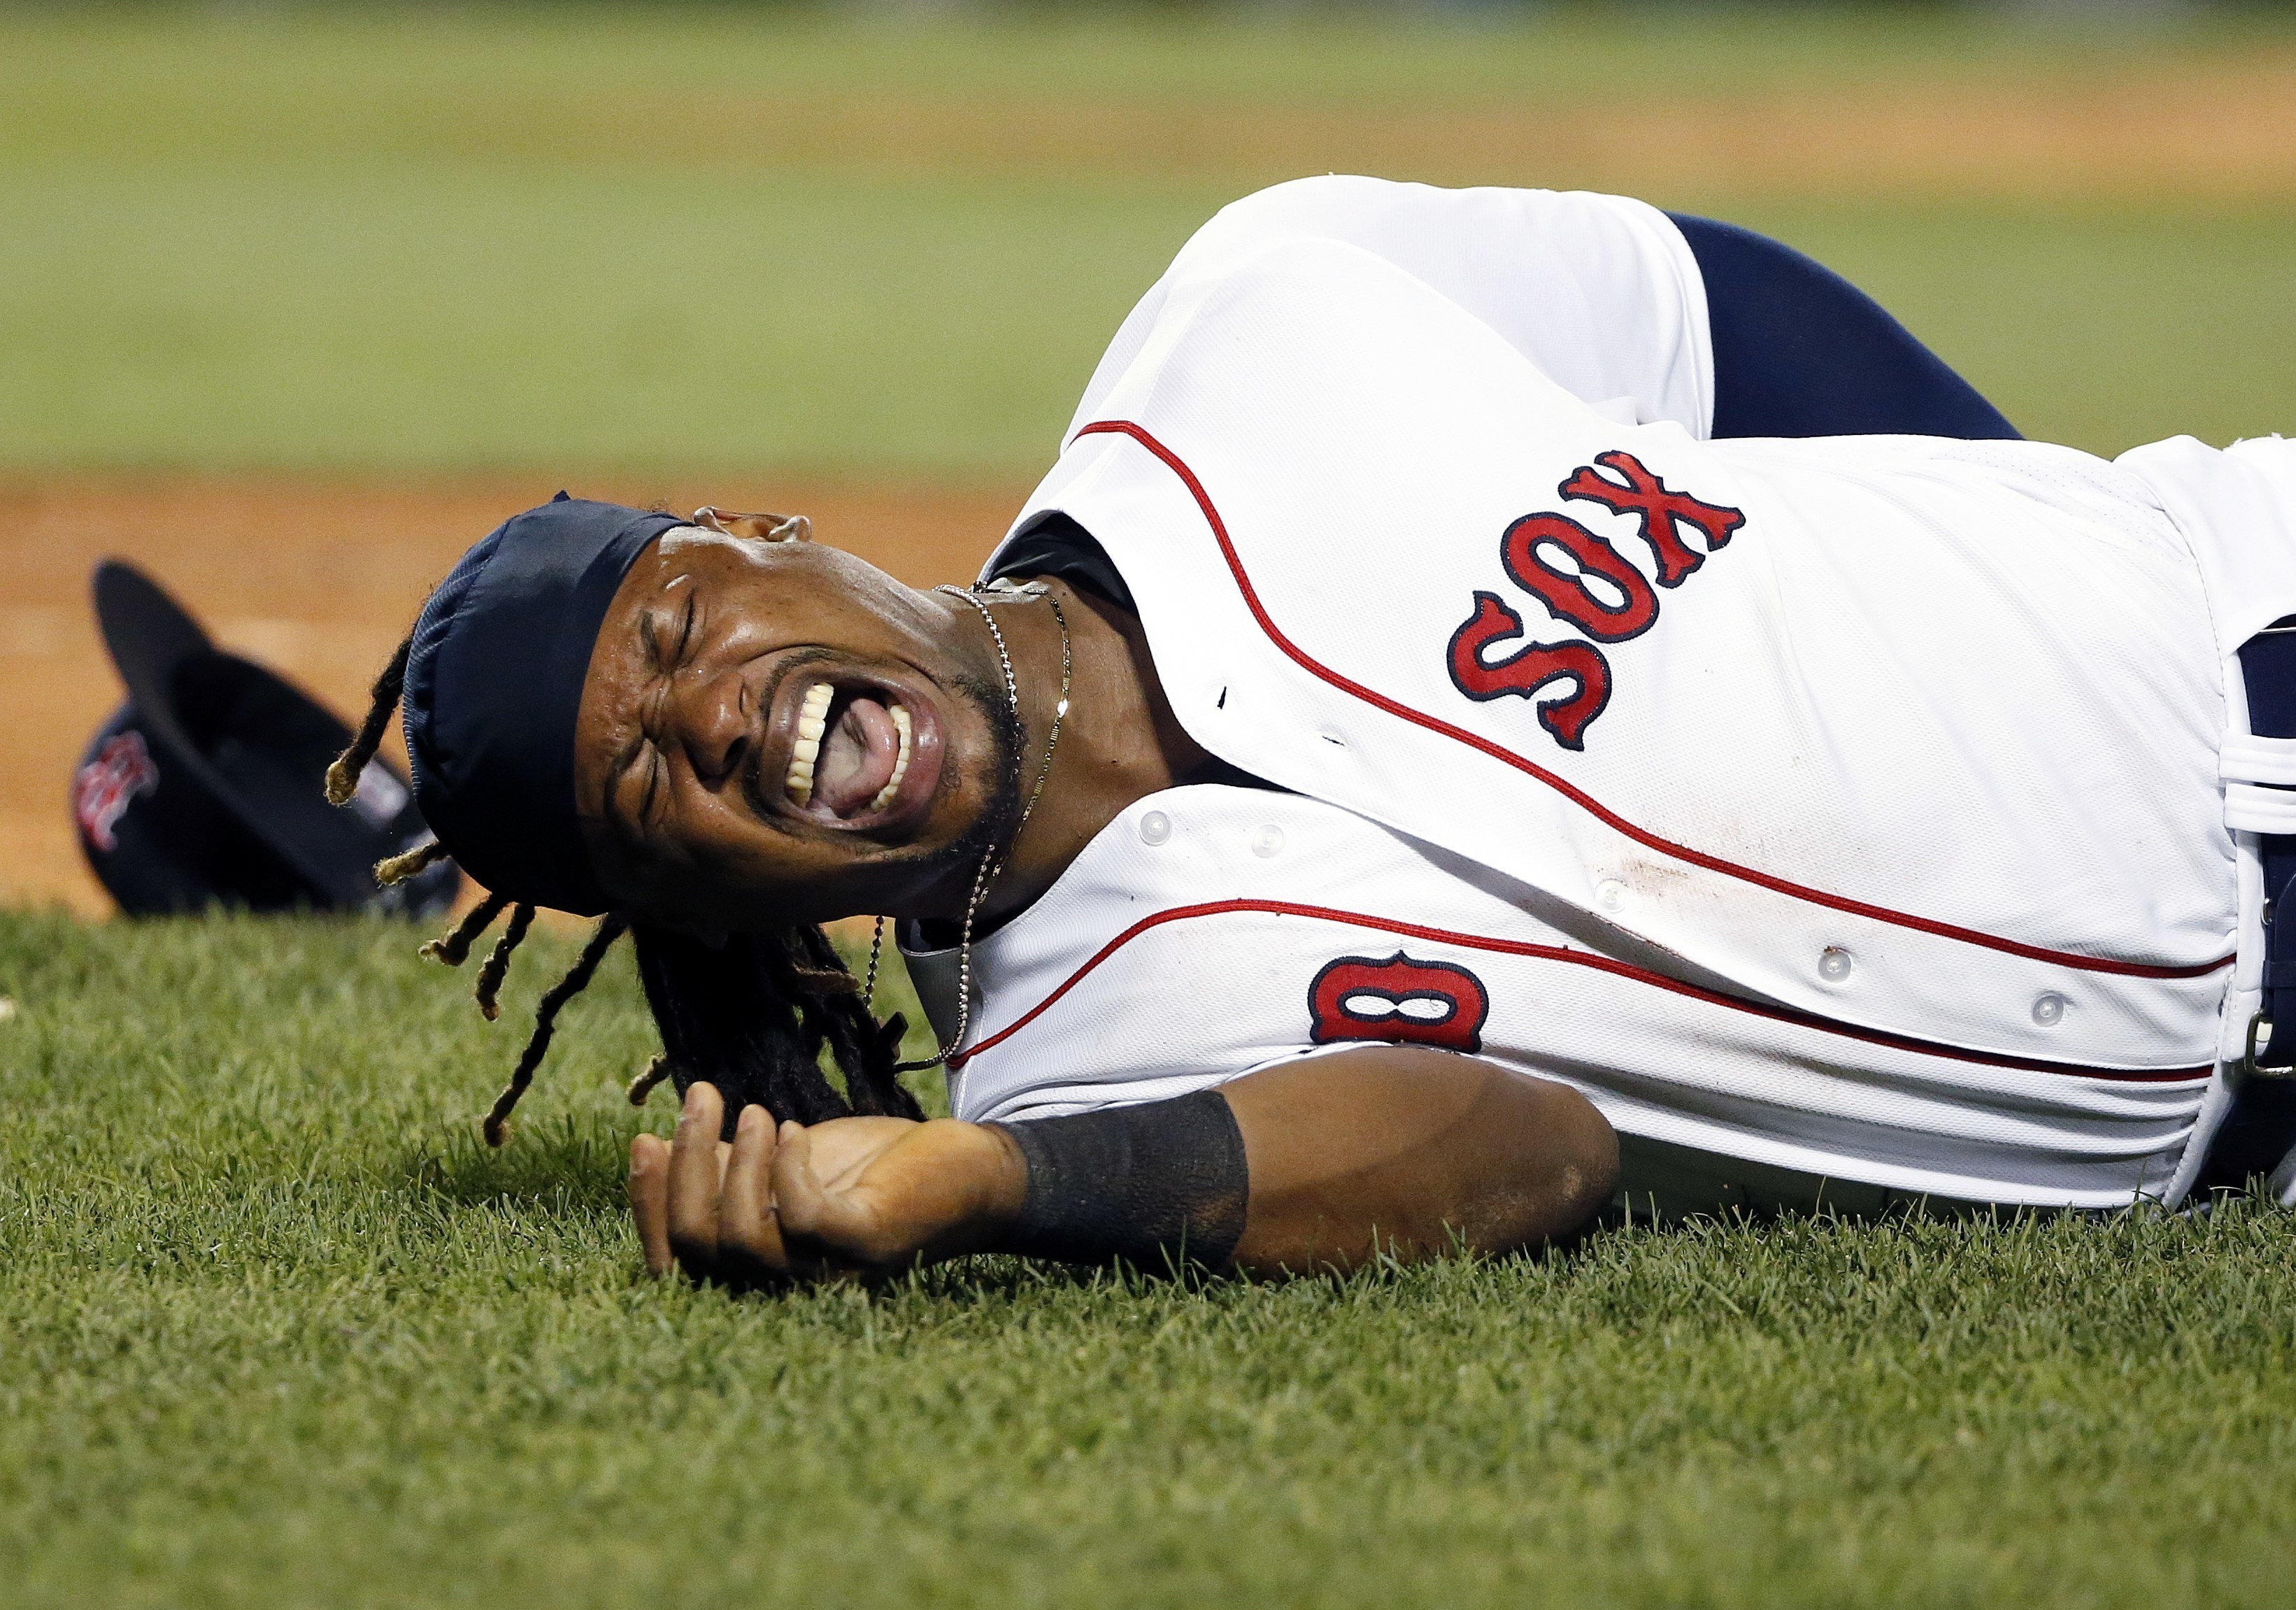 Boston Red Sox's Hanley Ramirez writhes on the ground after colliding with New York Yankees' Gary Sanchez as Sanchez ran out his single during the eighth inning of a baseball game in Boston, Thursday, Aug. 11, 2016. (AP Photo/Michael Dwyer)